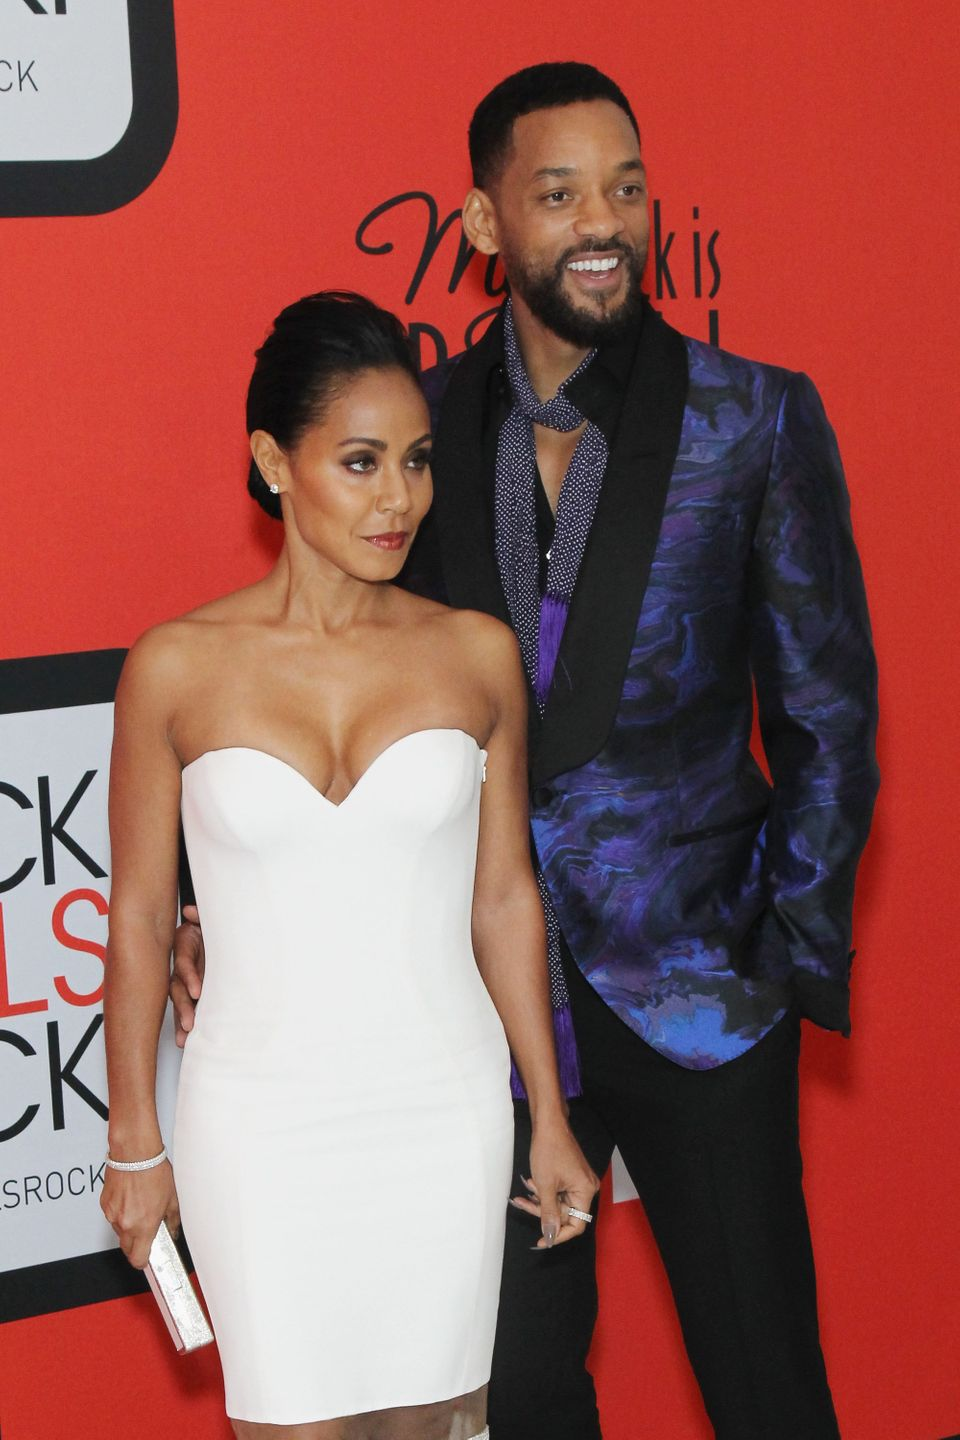 NEWARK, NJ - MARCH 28:  Jada Pinkett Smith (L) and Will Smith attend the BET's 'Black Girls Rock!' Red Carpet sponsored by Ch